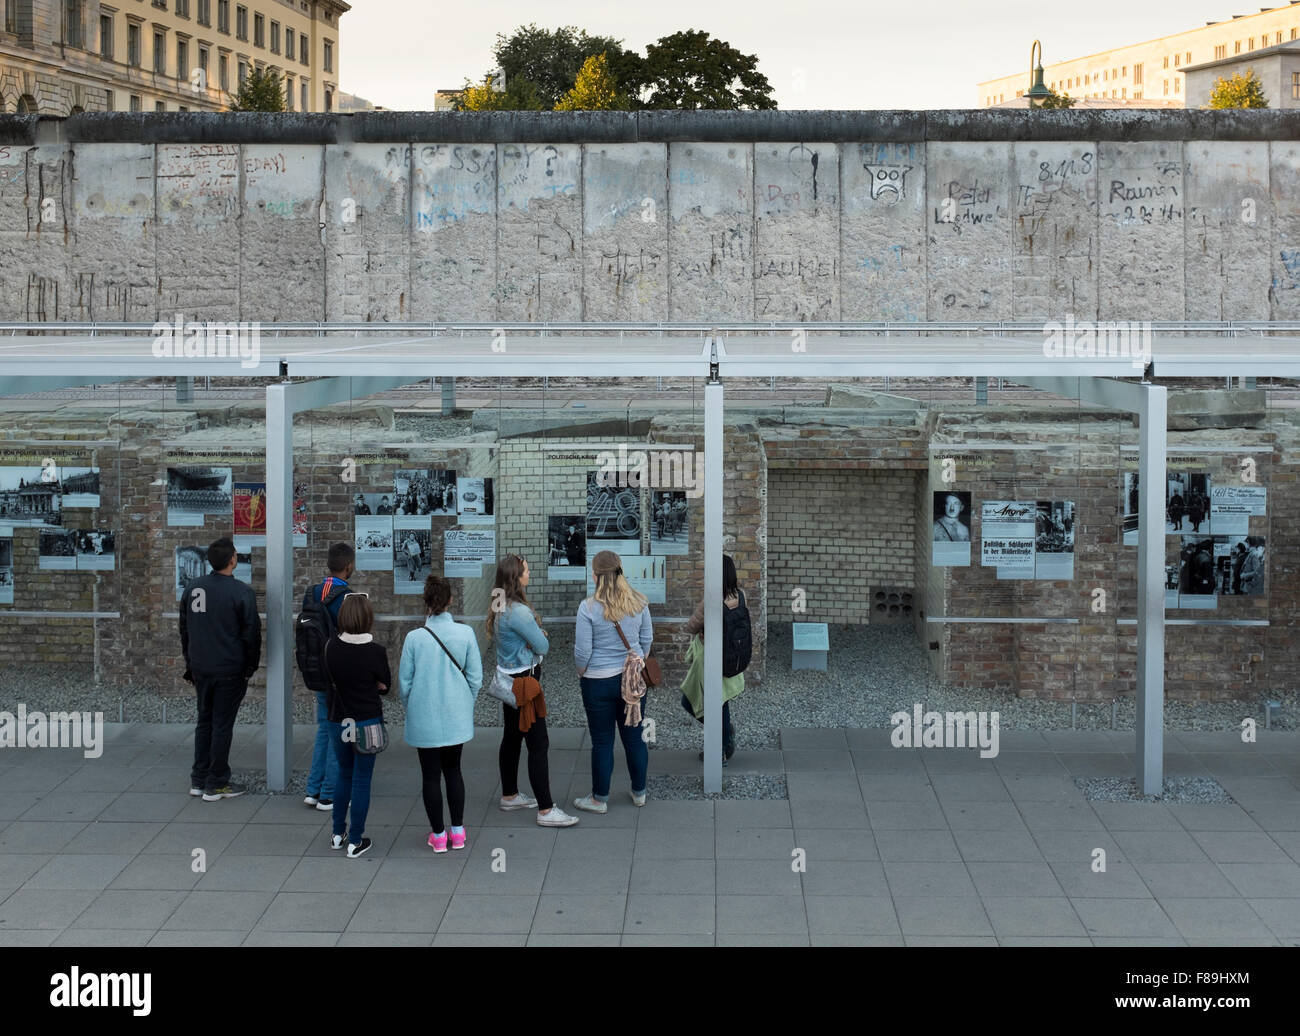 Exhibition Topography of Terror, Berlin Wall, Germany - Stock Image